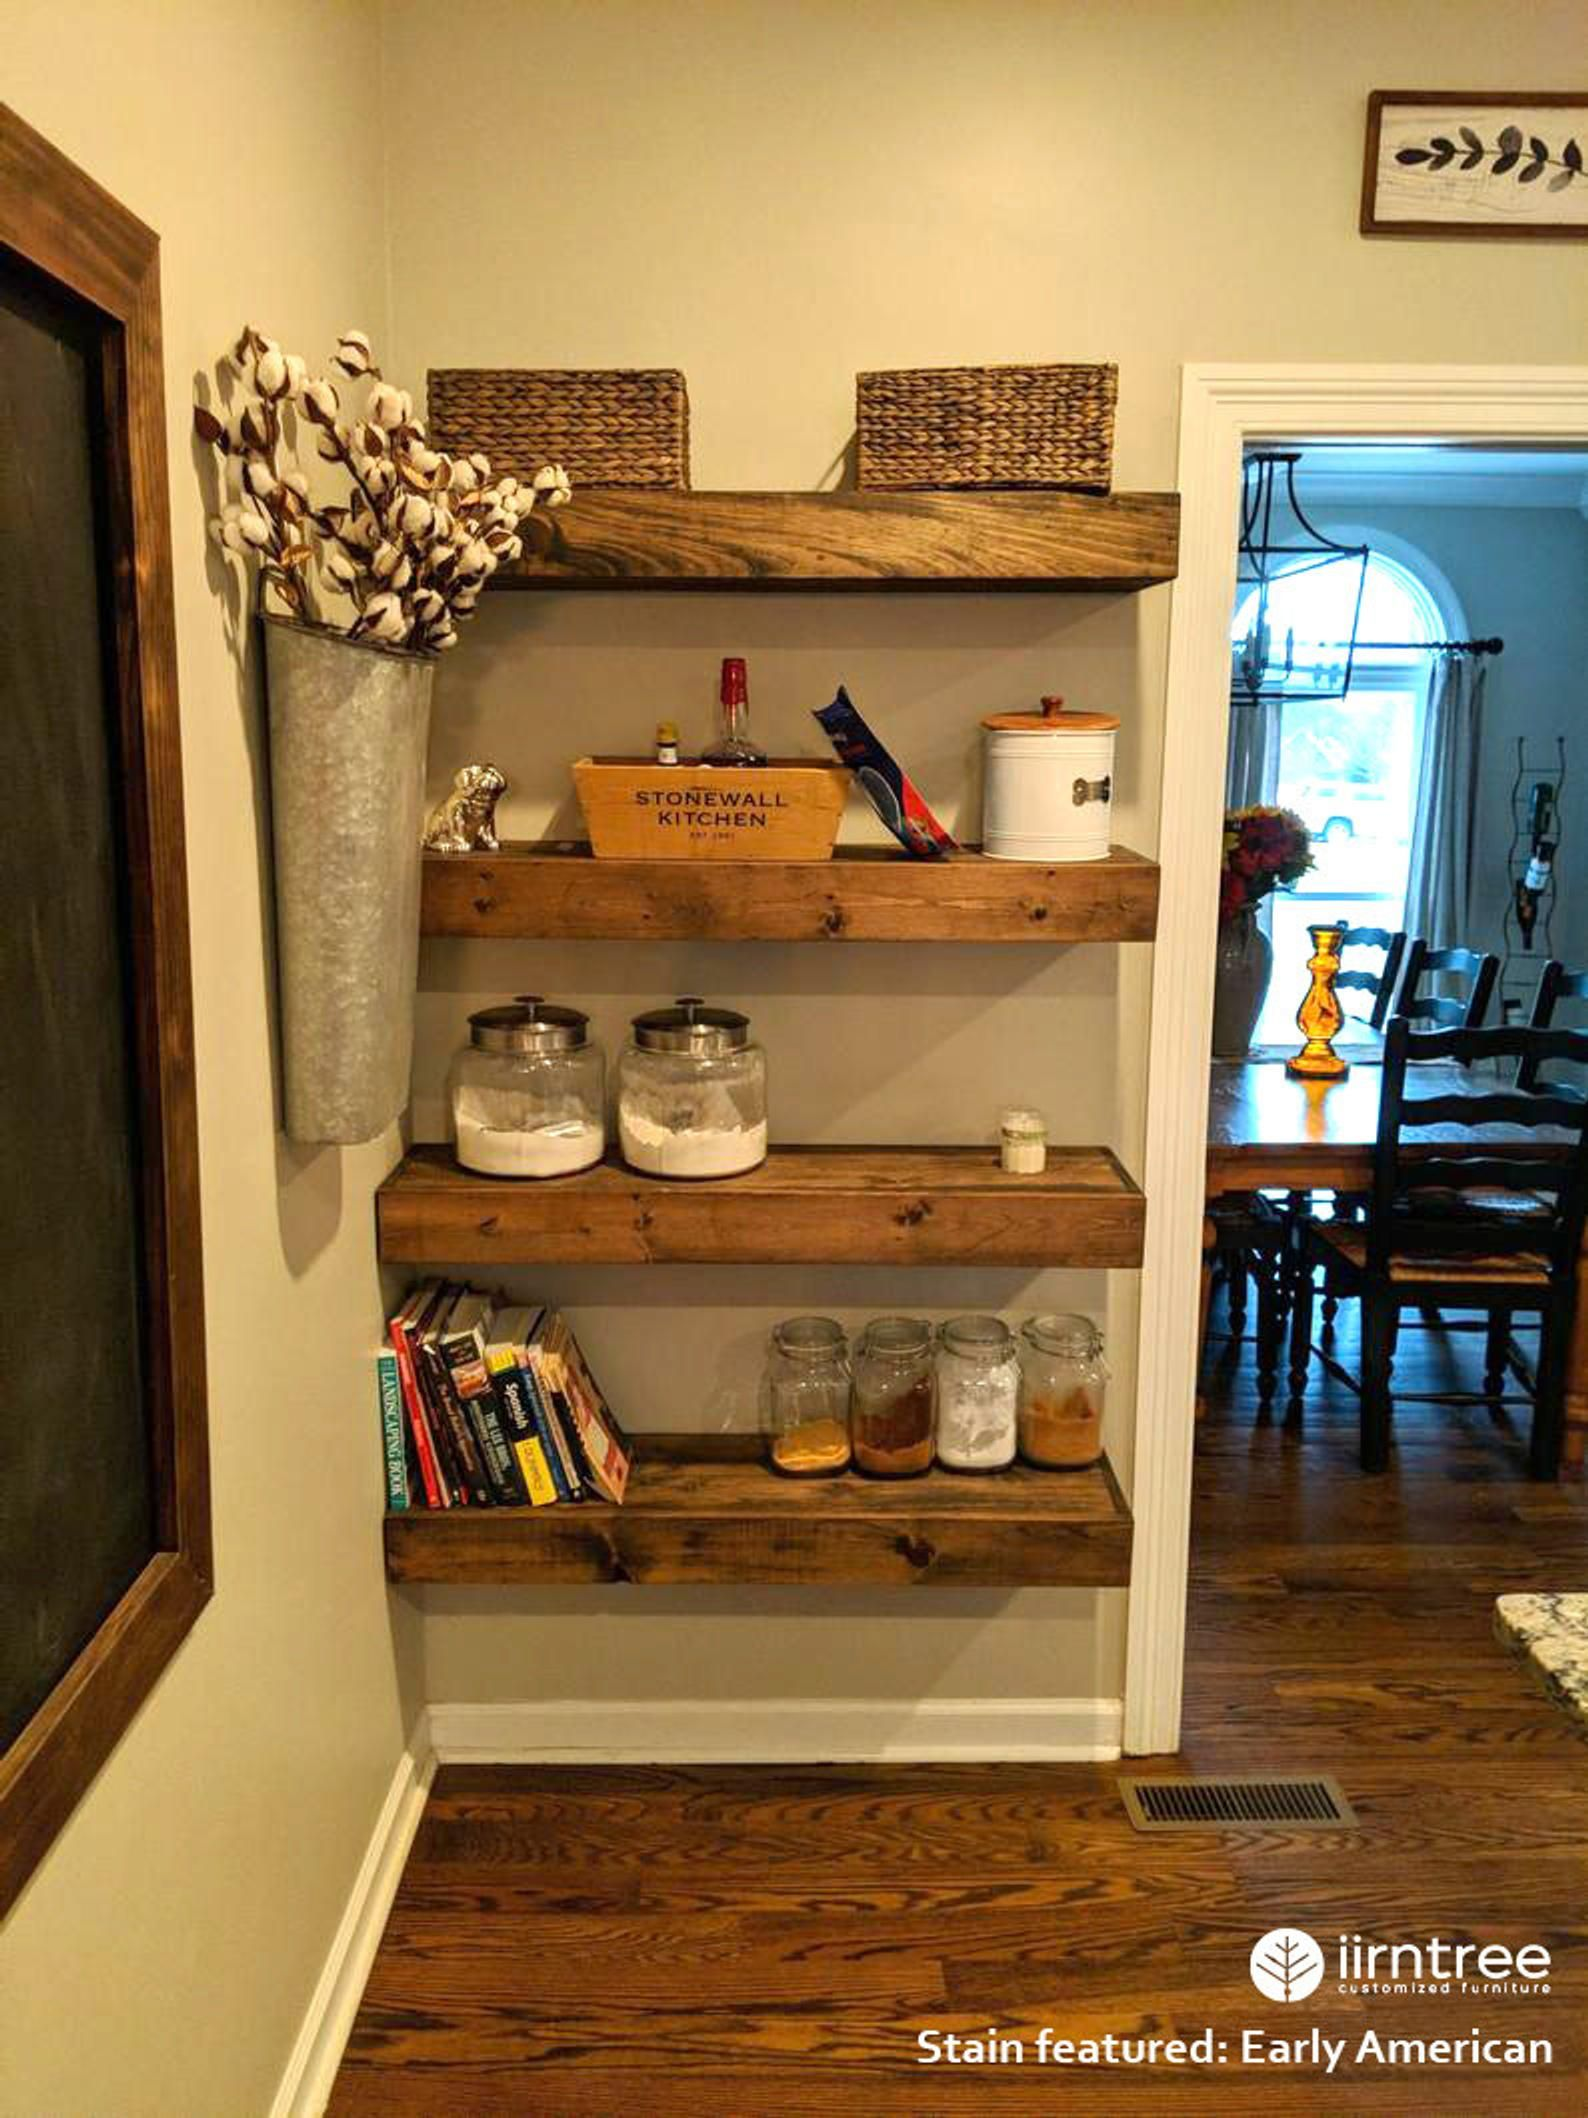 Free Shipping Wood Floating Shelves 10 Inches Deep Etsy In 2020 Wood Floating Shelves Rustic Shelves Shelves